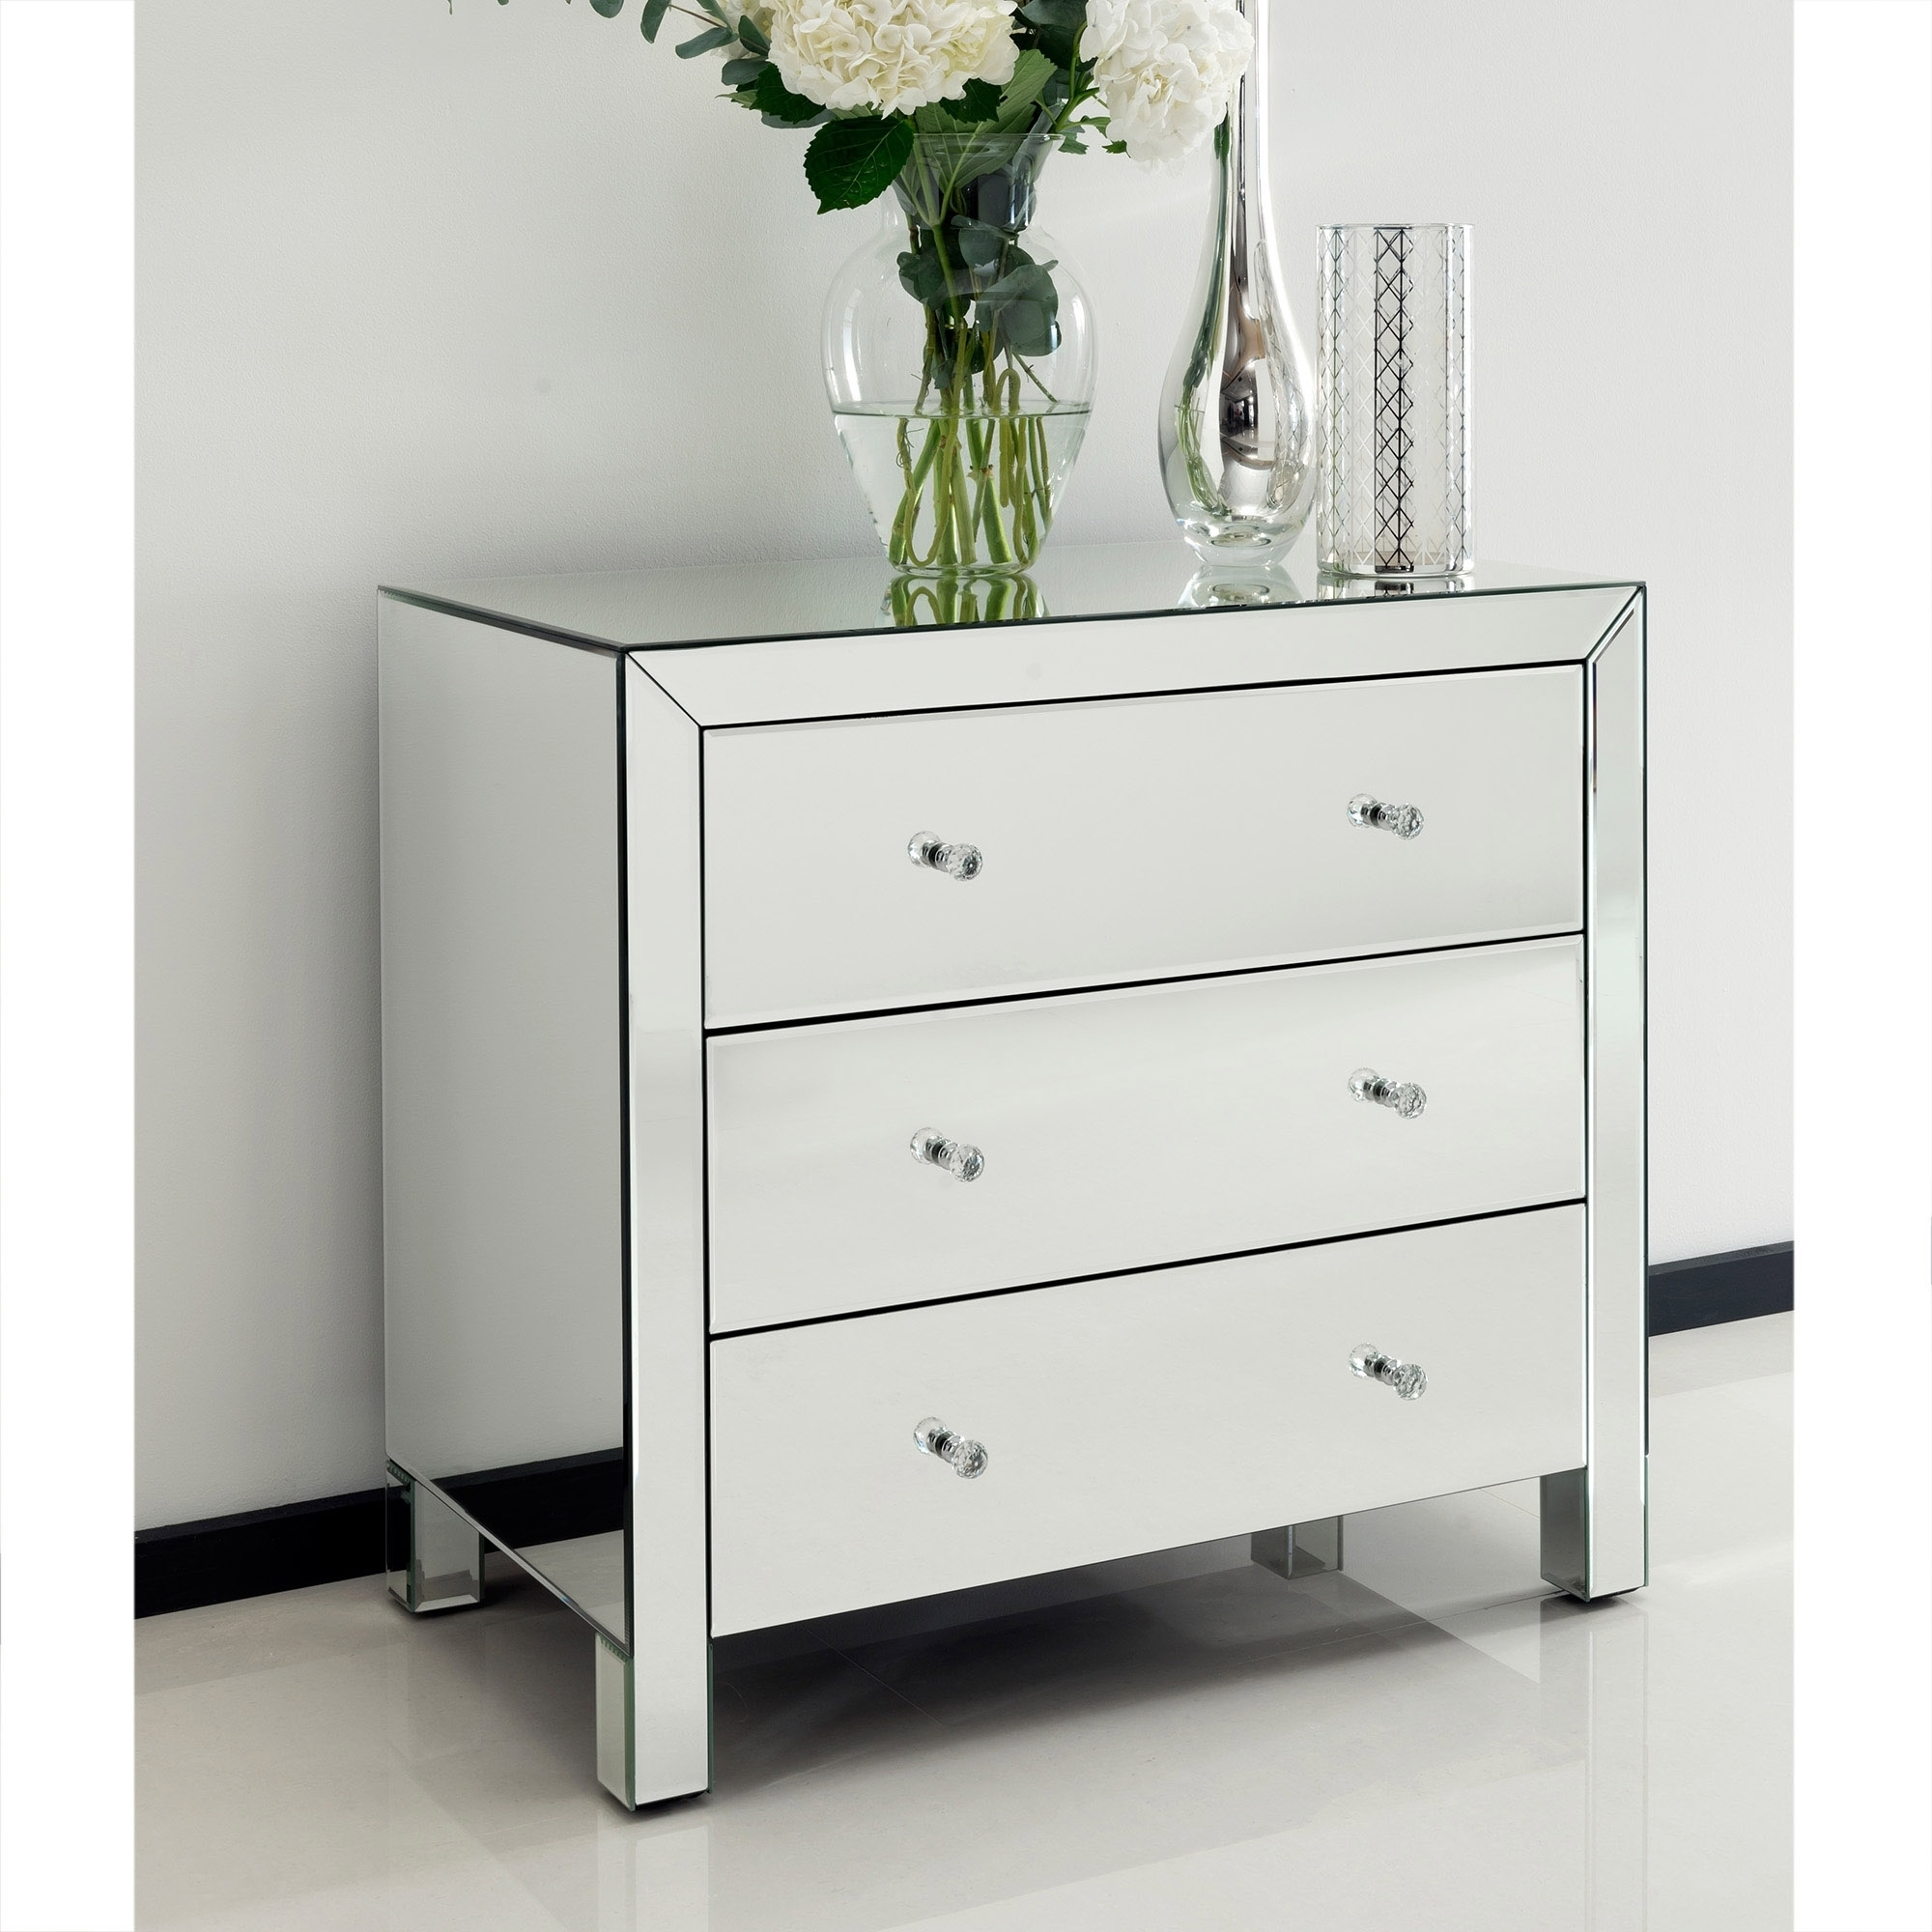 Mirrored Bedroom Furniture Uk Mirrored Furniture And Mirrored Bedroom Furniture